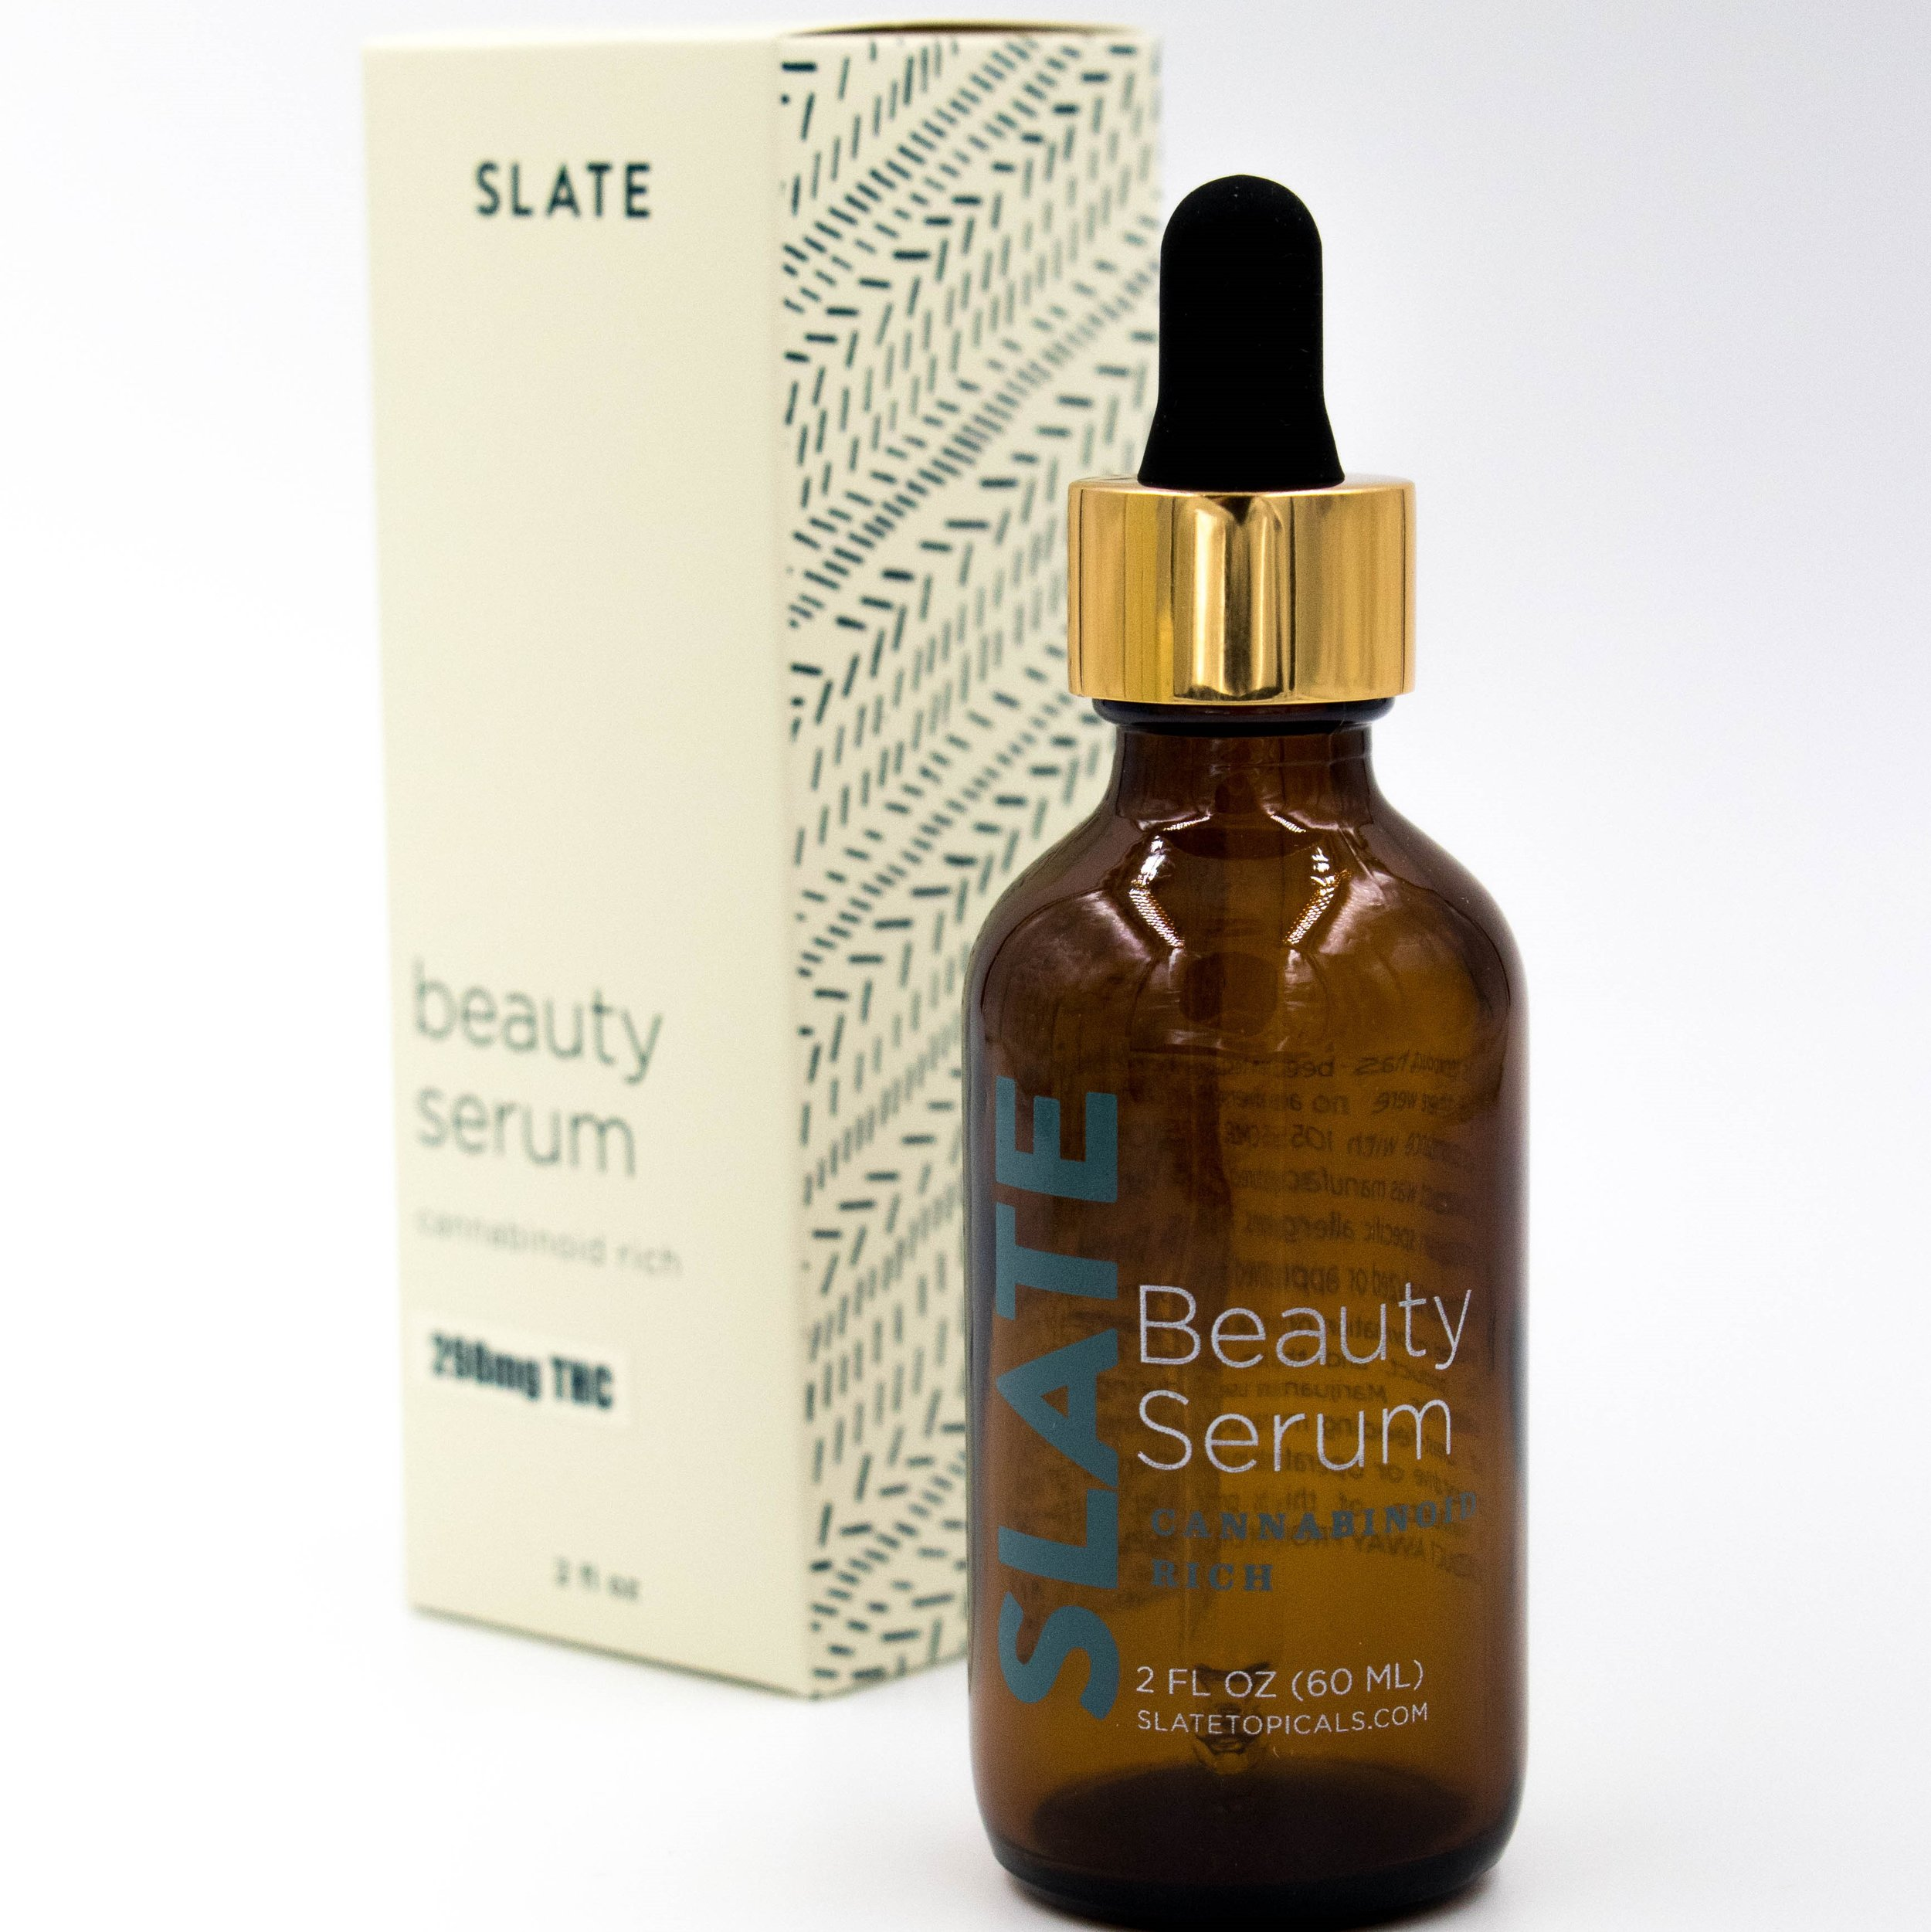 SLATE-Beauty-Serum.jpg